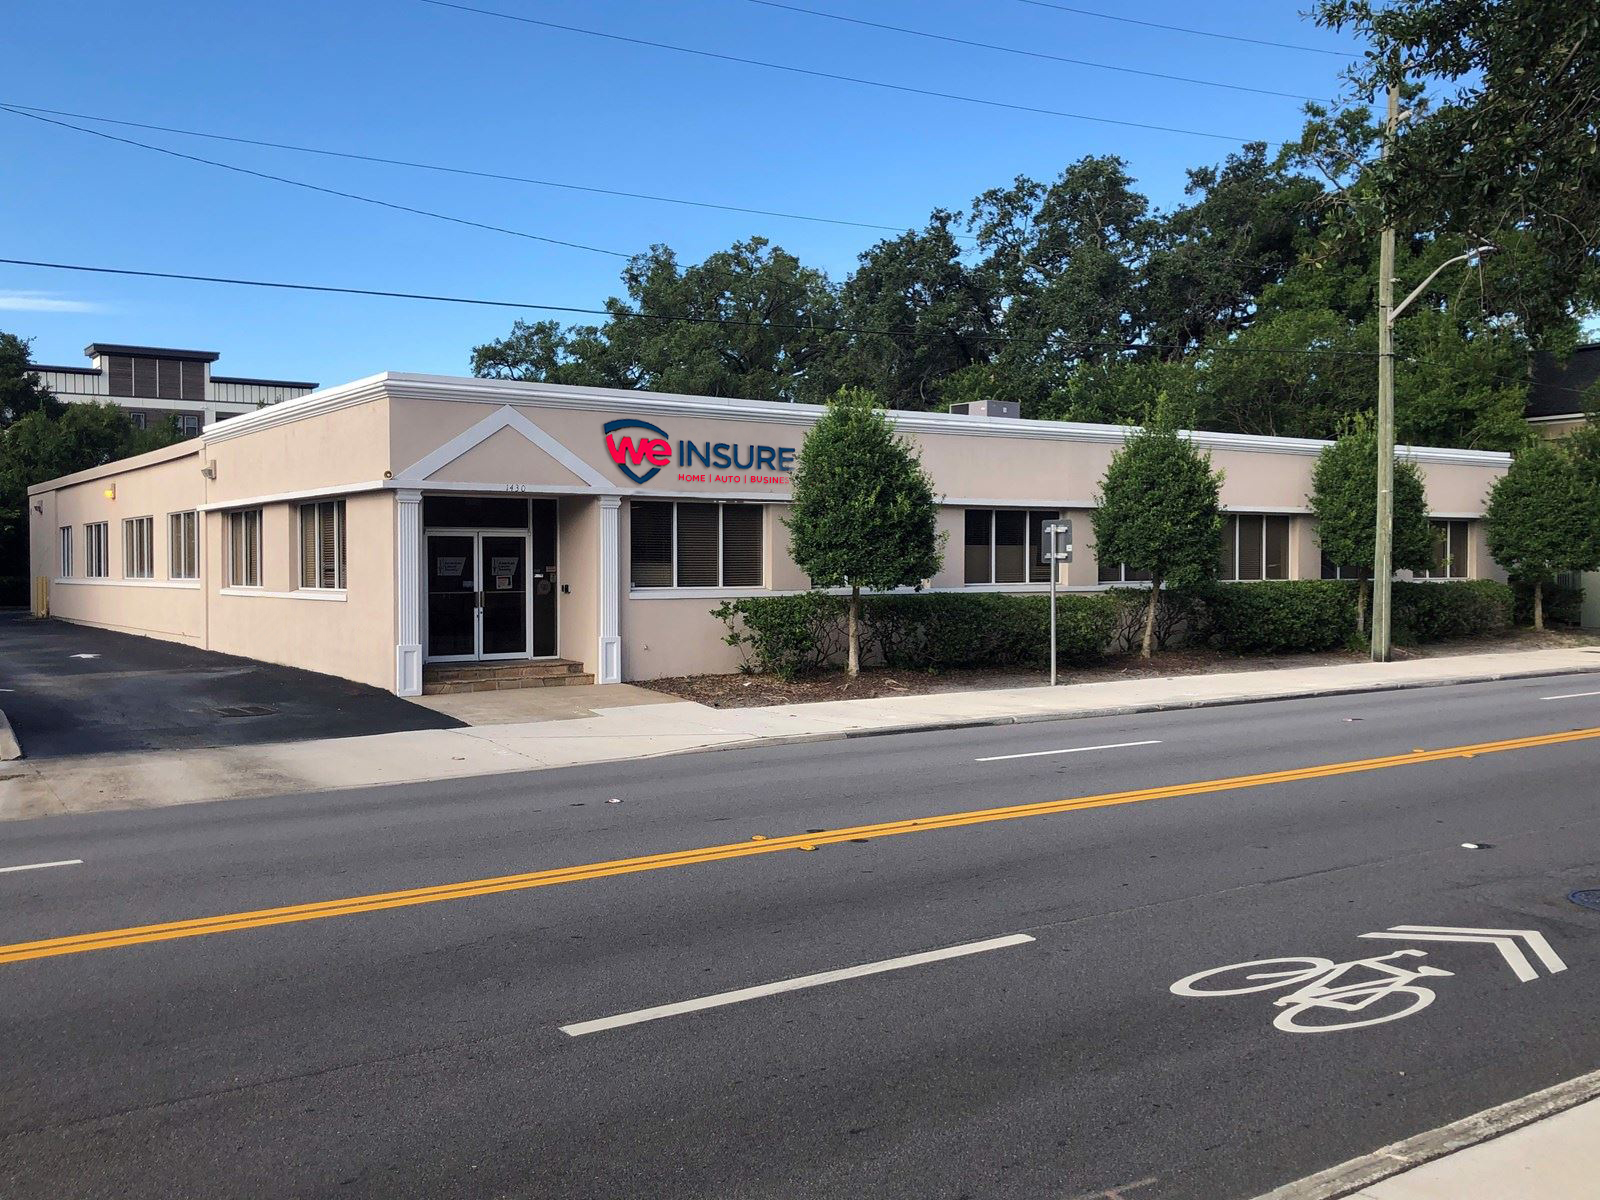 We Insure Inc.  Announces the Acquisition of New Headquarters in Jacksonville, Florida Image